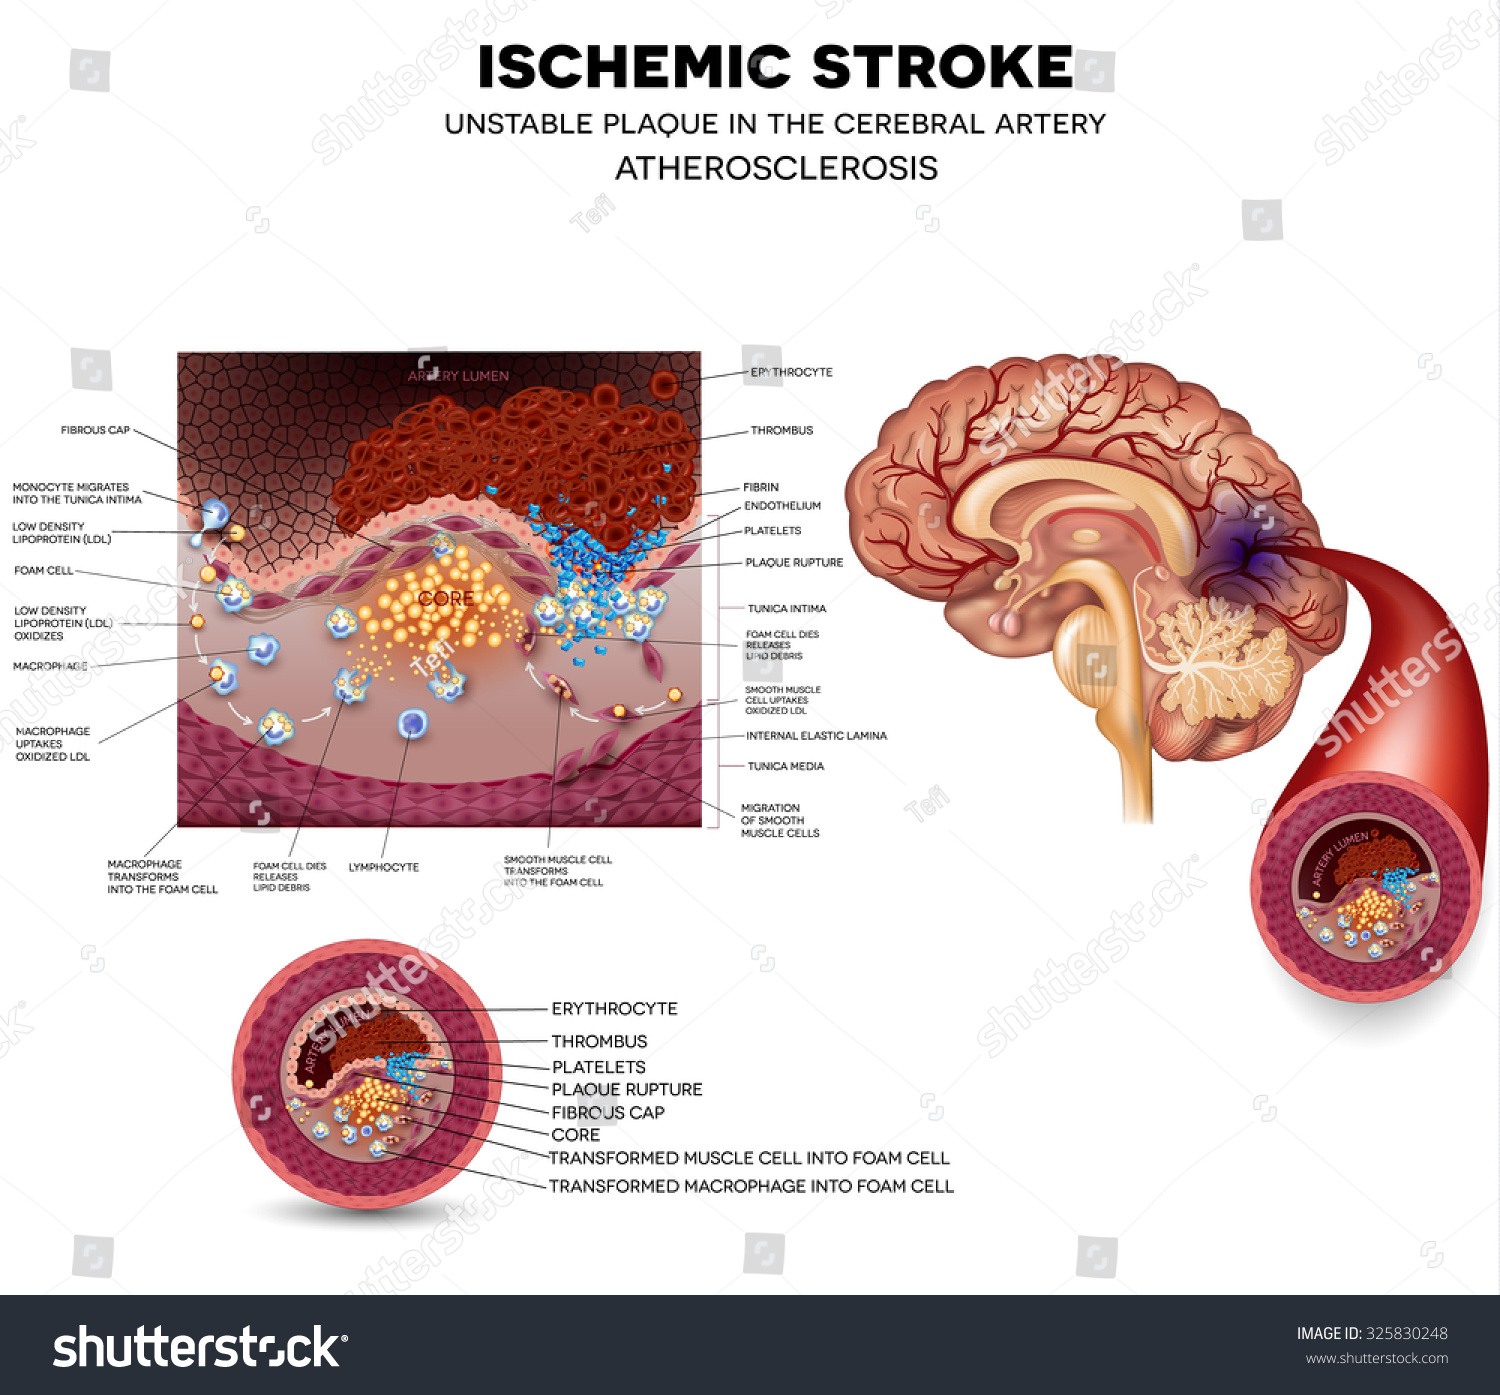 Ischemic Stroke In The Cerebral Artery Unstable Plaque. Horse Trail Signs. Infants Signs. Halo Signs. Hypothyroid Signs. 1st Floor Signs. Car Wash Signs. Meal Signs. Red Circle Signs